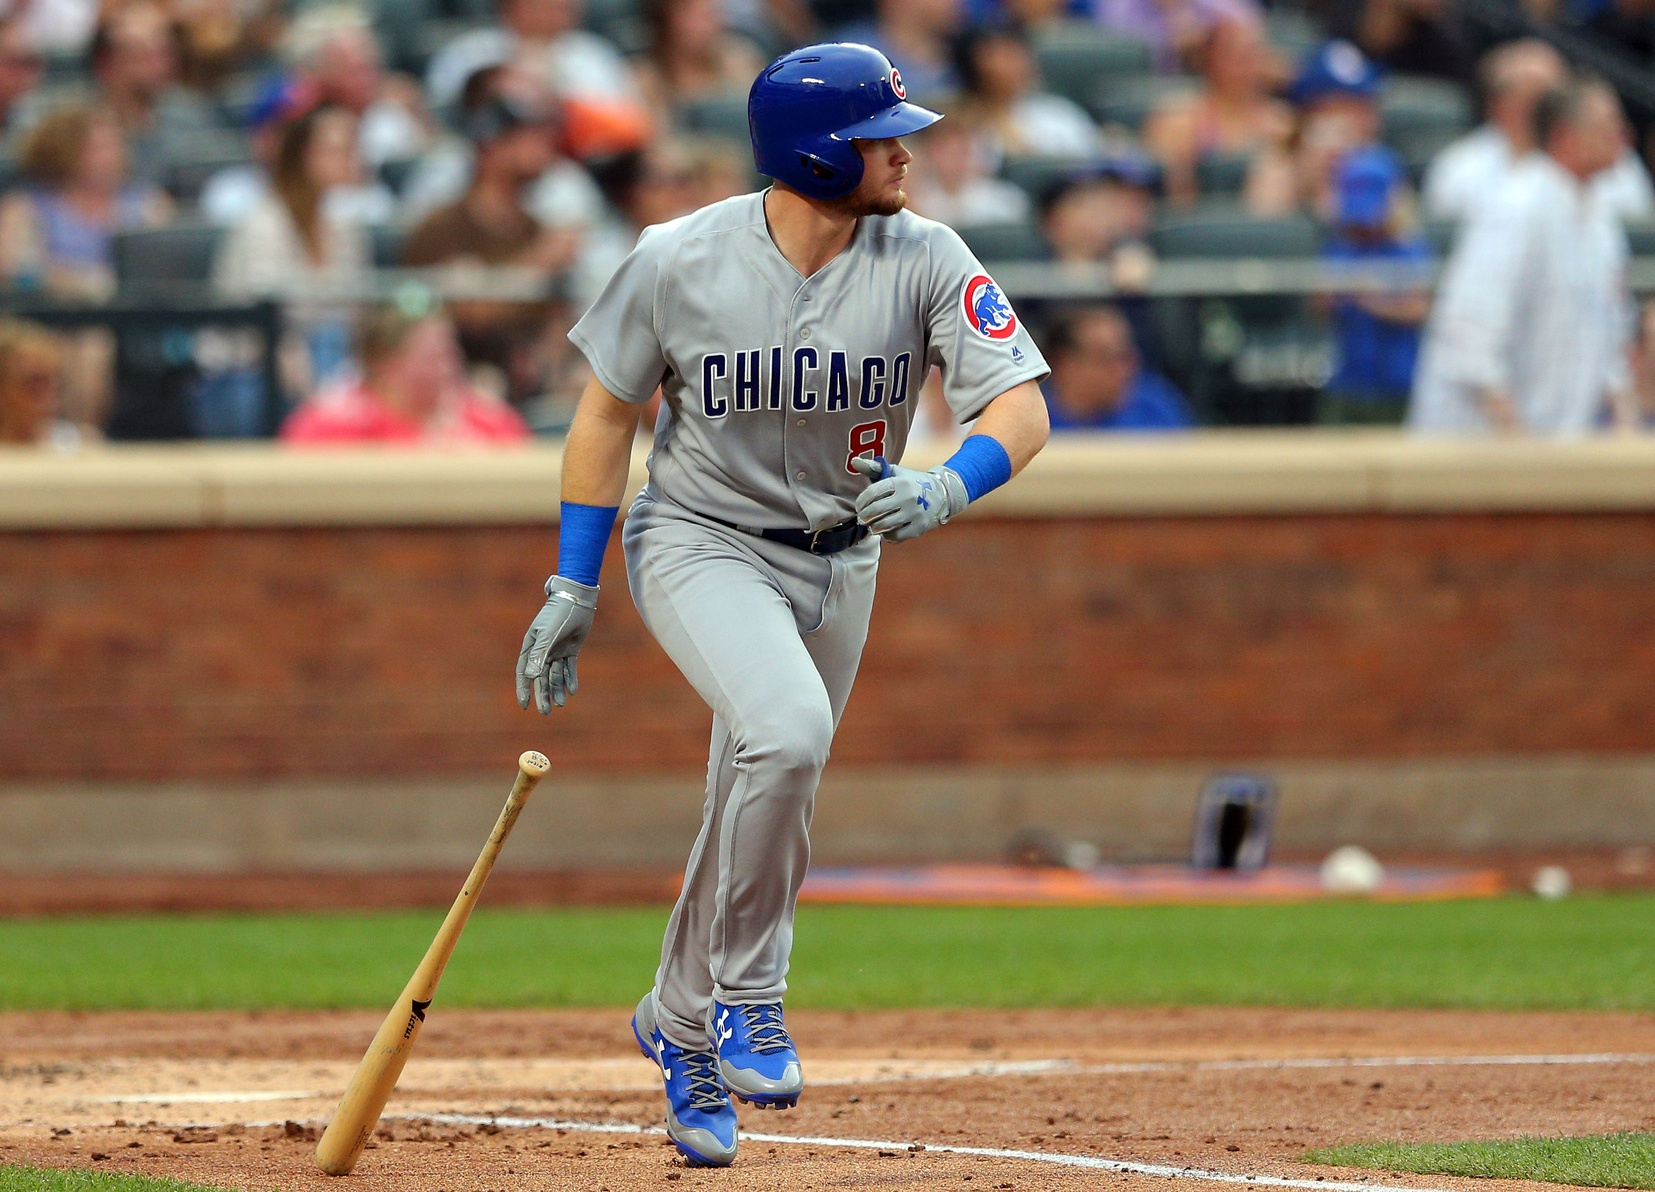 """Batting leadoff, Rizzo homers as Cubs roll"""""""